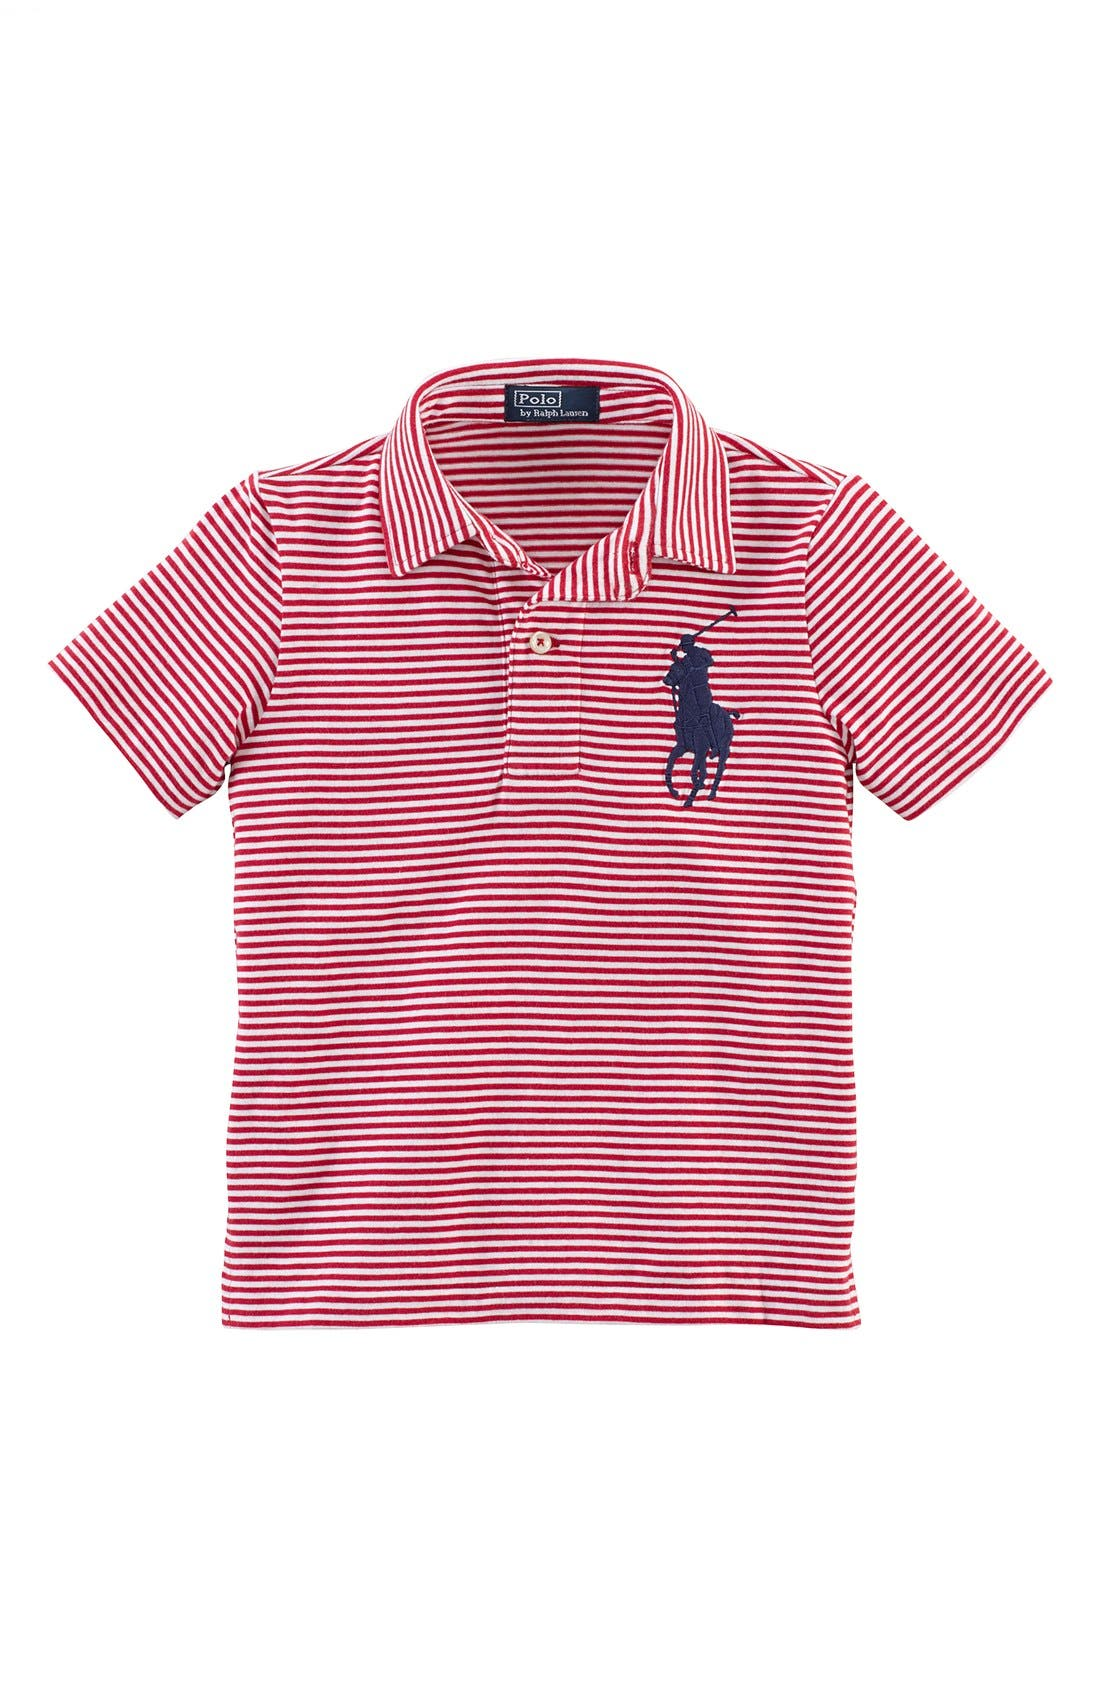 Alternate Image 1 Selected - Ralph Lauren Stripe Polo (Toddler Boys)